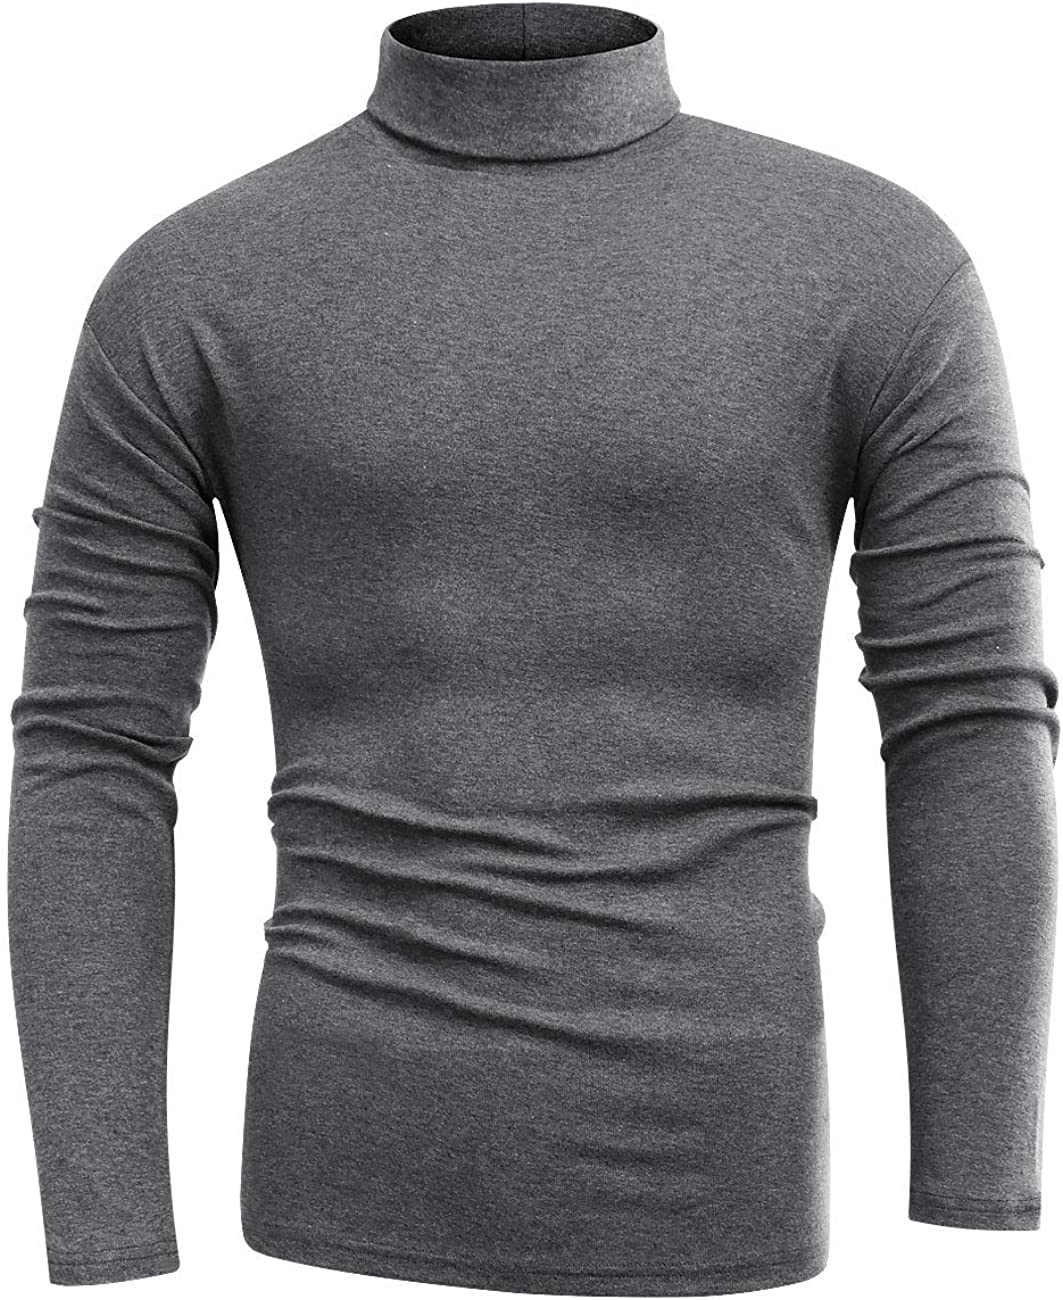 Beauhuty Men's Basic Turtleneck Long Sleeve T-Shirts Fleece Knitted Casual Pullover Top